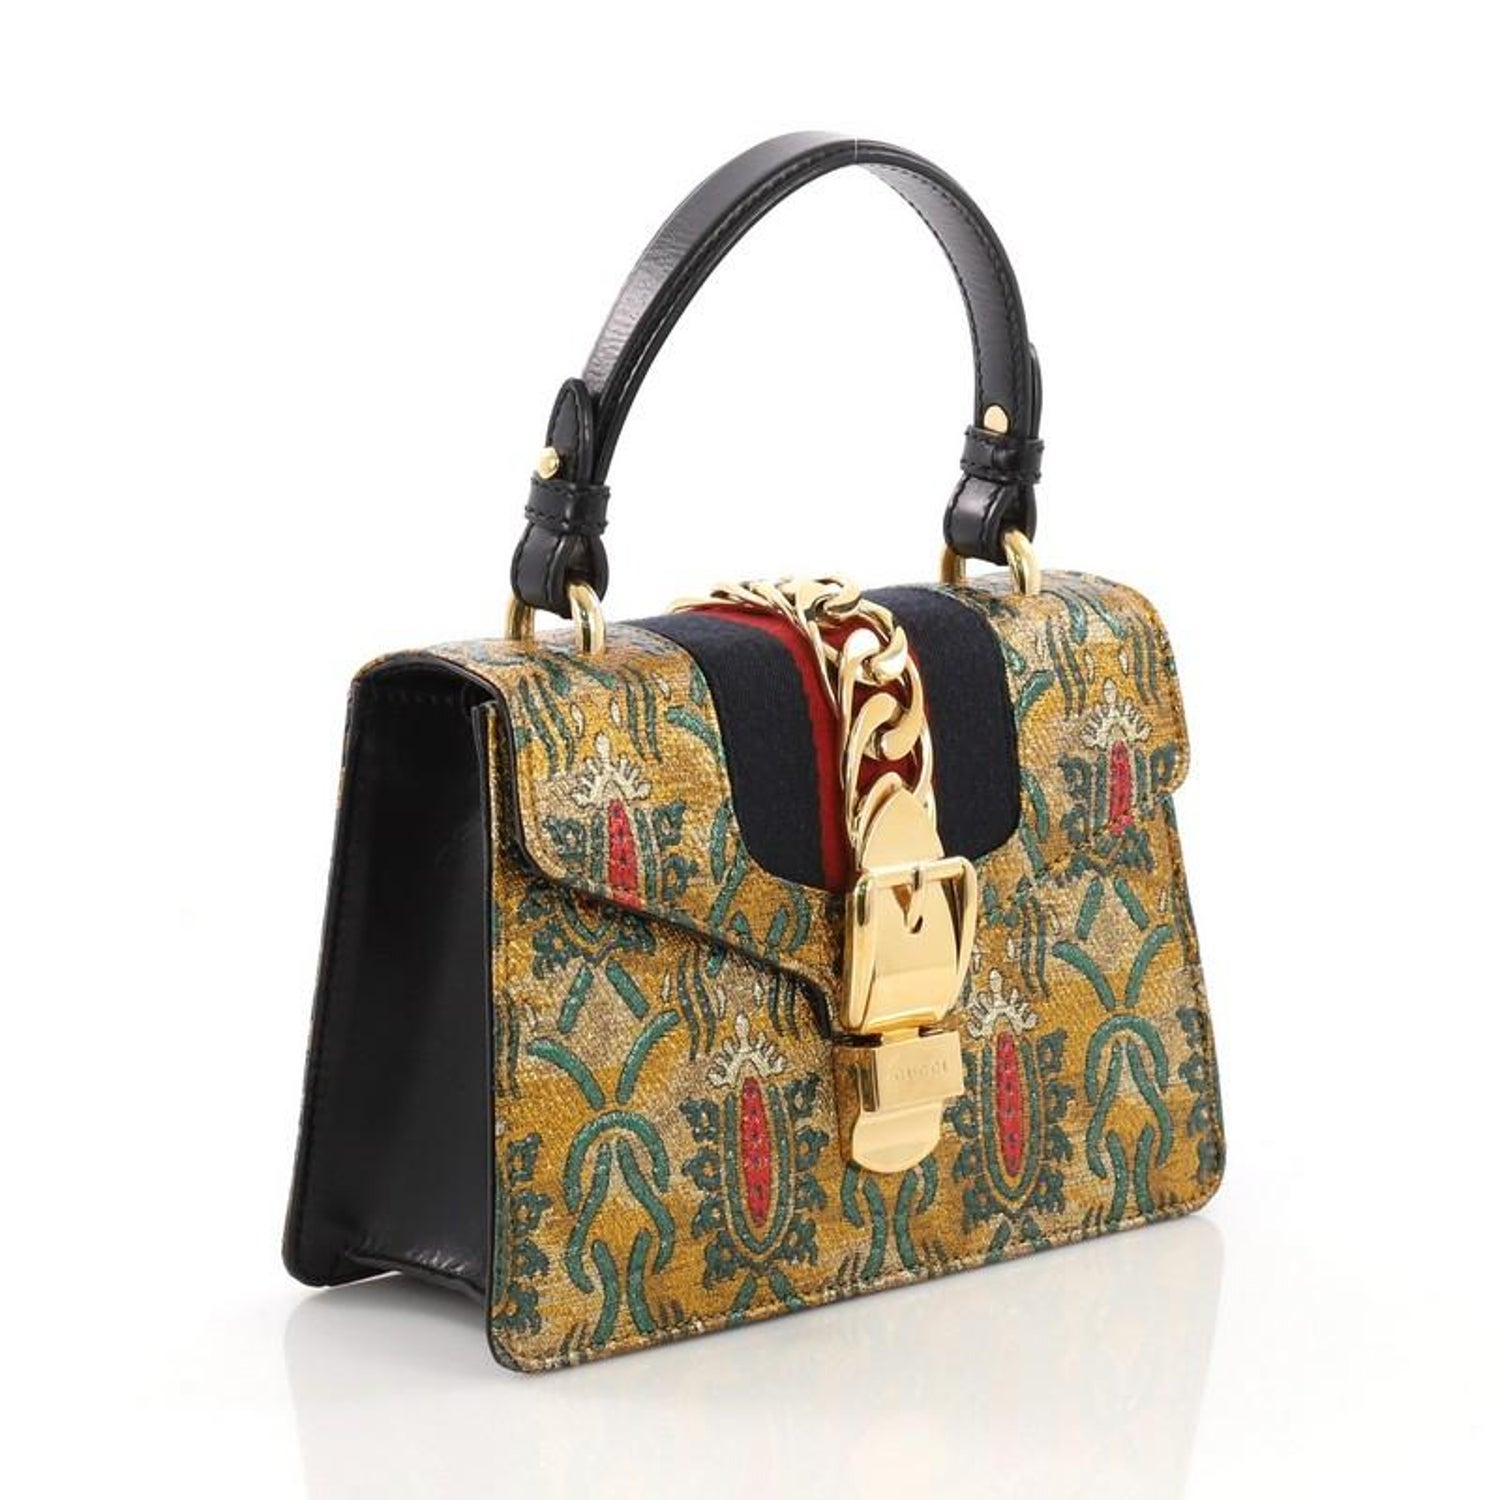 db4de521476 Gucci Sylvie Top Handle Bag Brocade Mini at 1stdibs